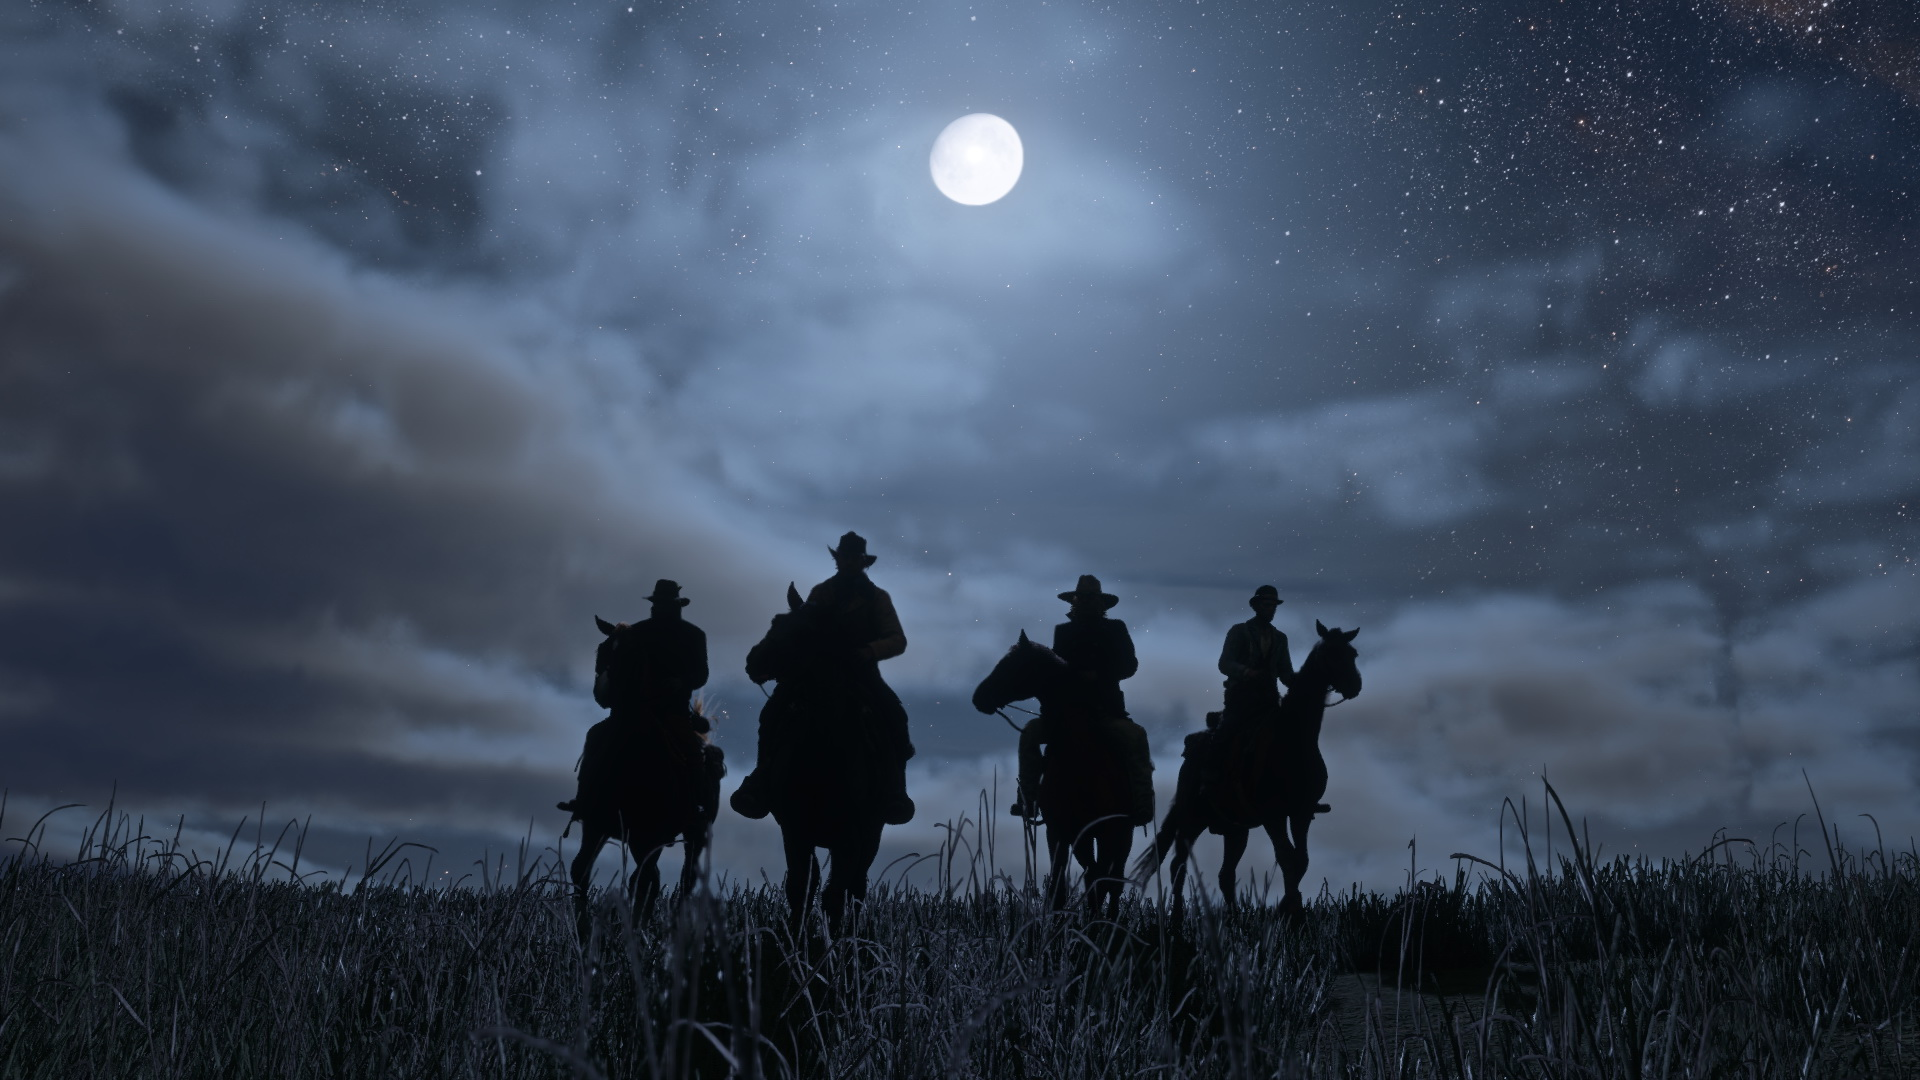 Red Dead Redemption 2 officially delayed to Spring 2018; New screenshots released